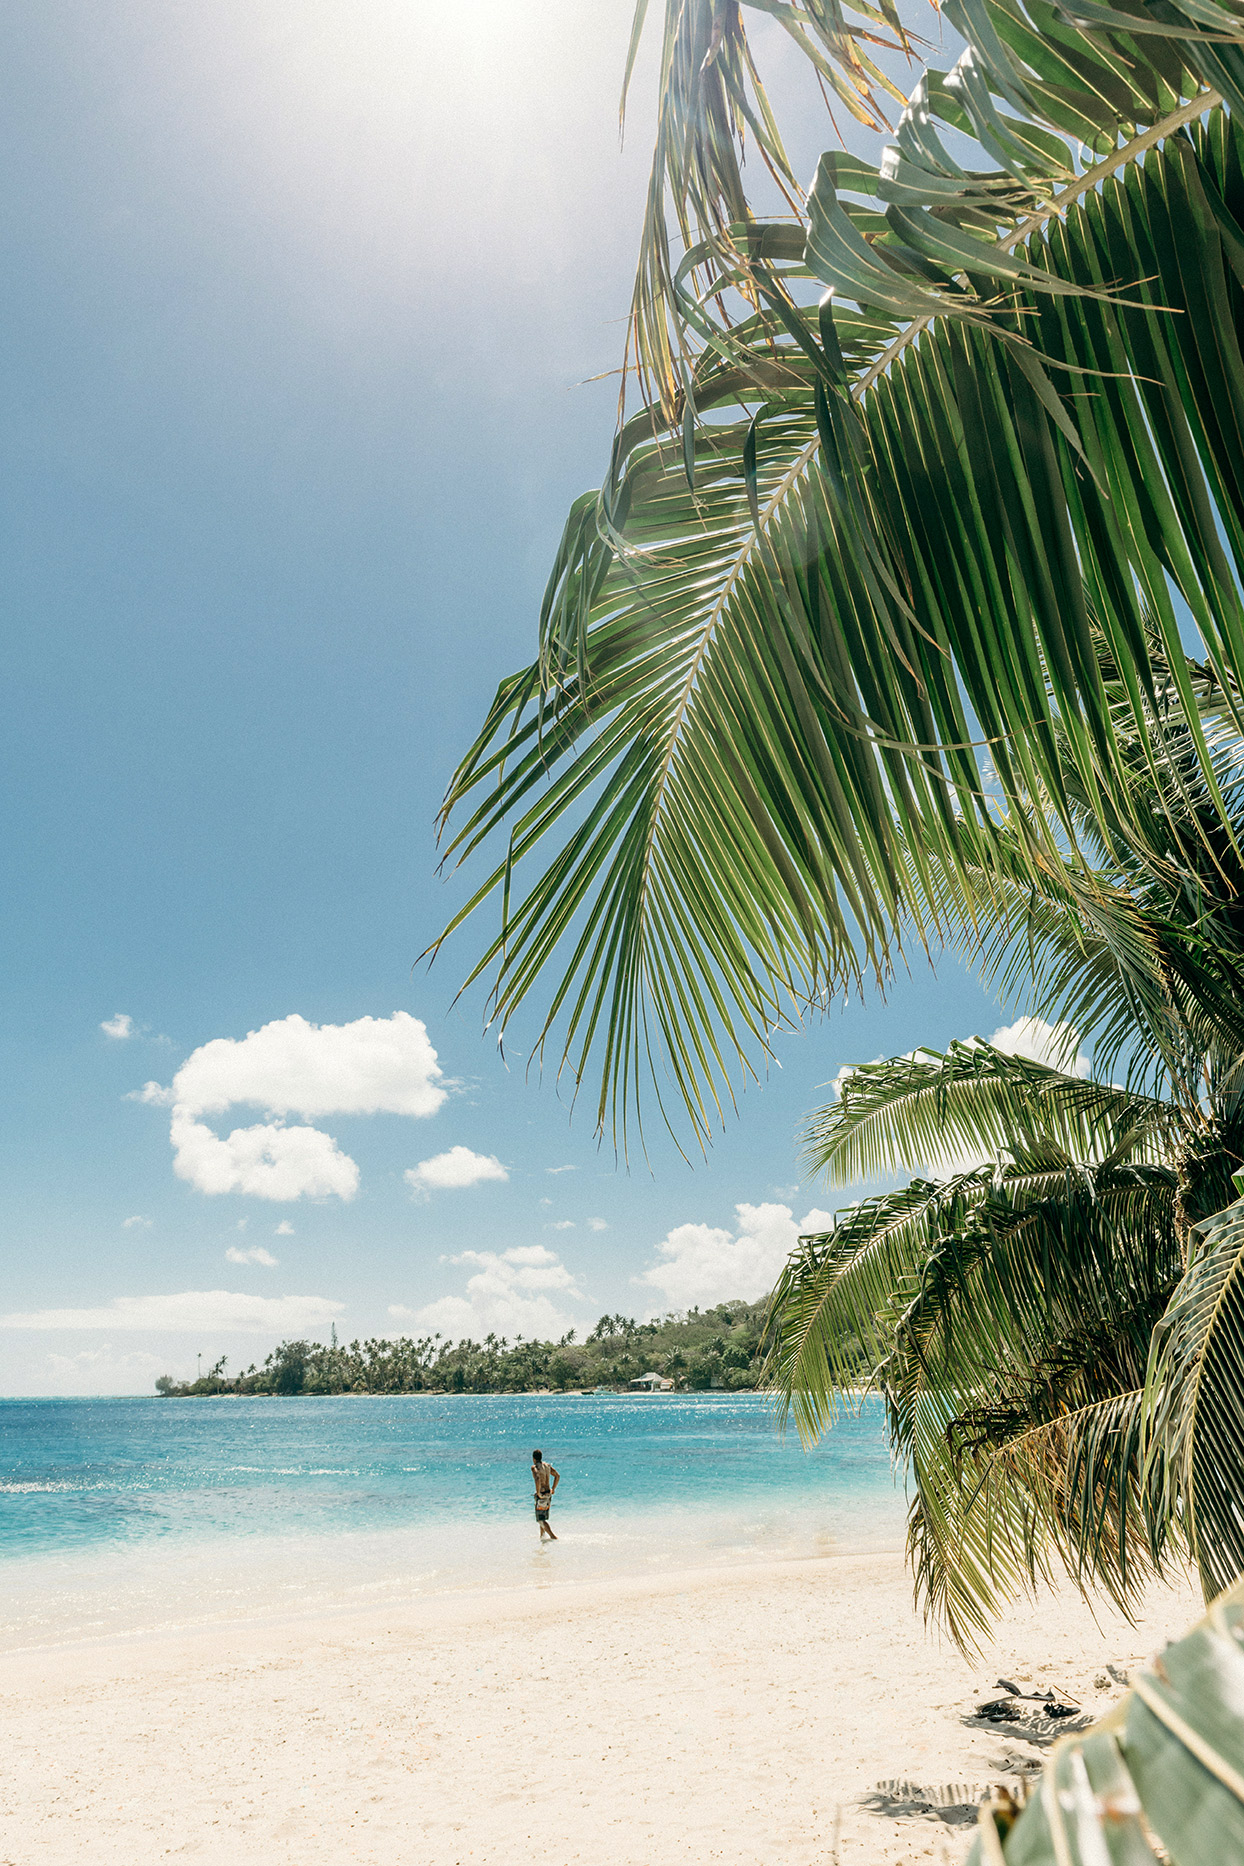 french polynesian beach wth man in the water